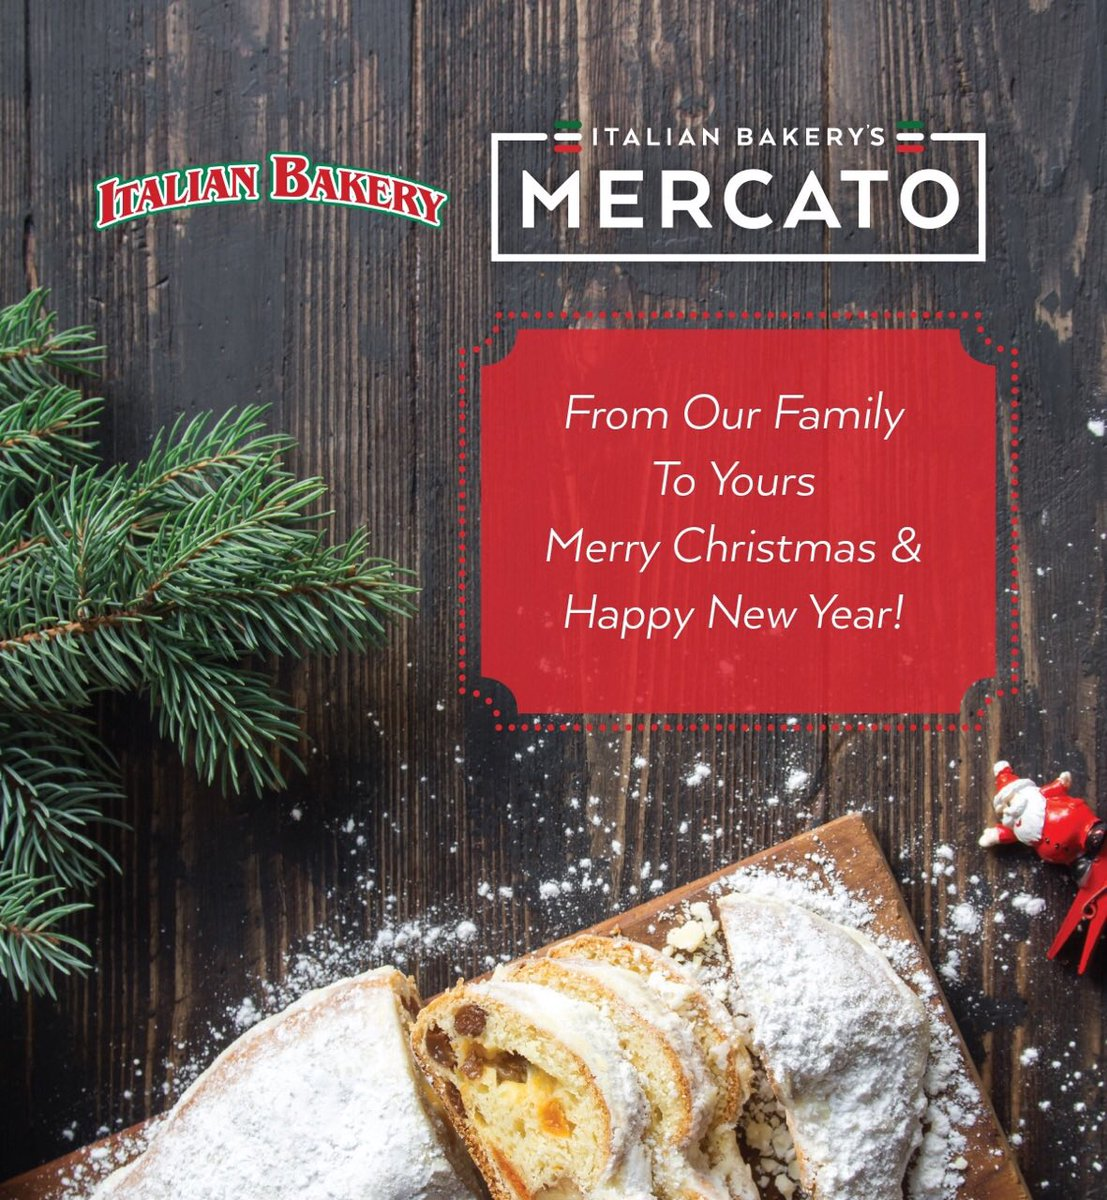 ital bakery mercato on twitter merry christmas happy new year from the italian bakerys mercato team t8n shopt8n yeg merrychristmas - Merry Christmas And Happy New Year In Italian